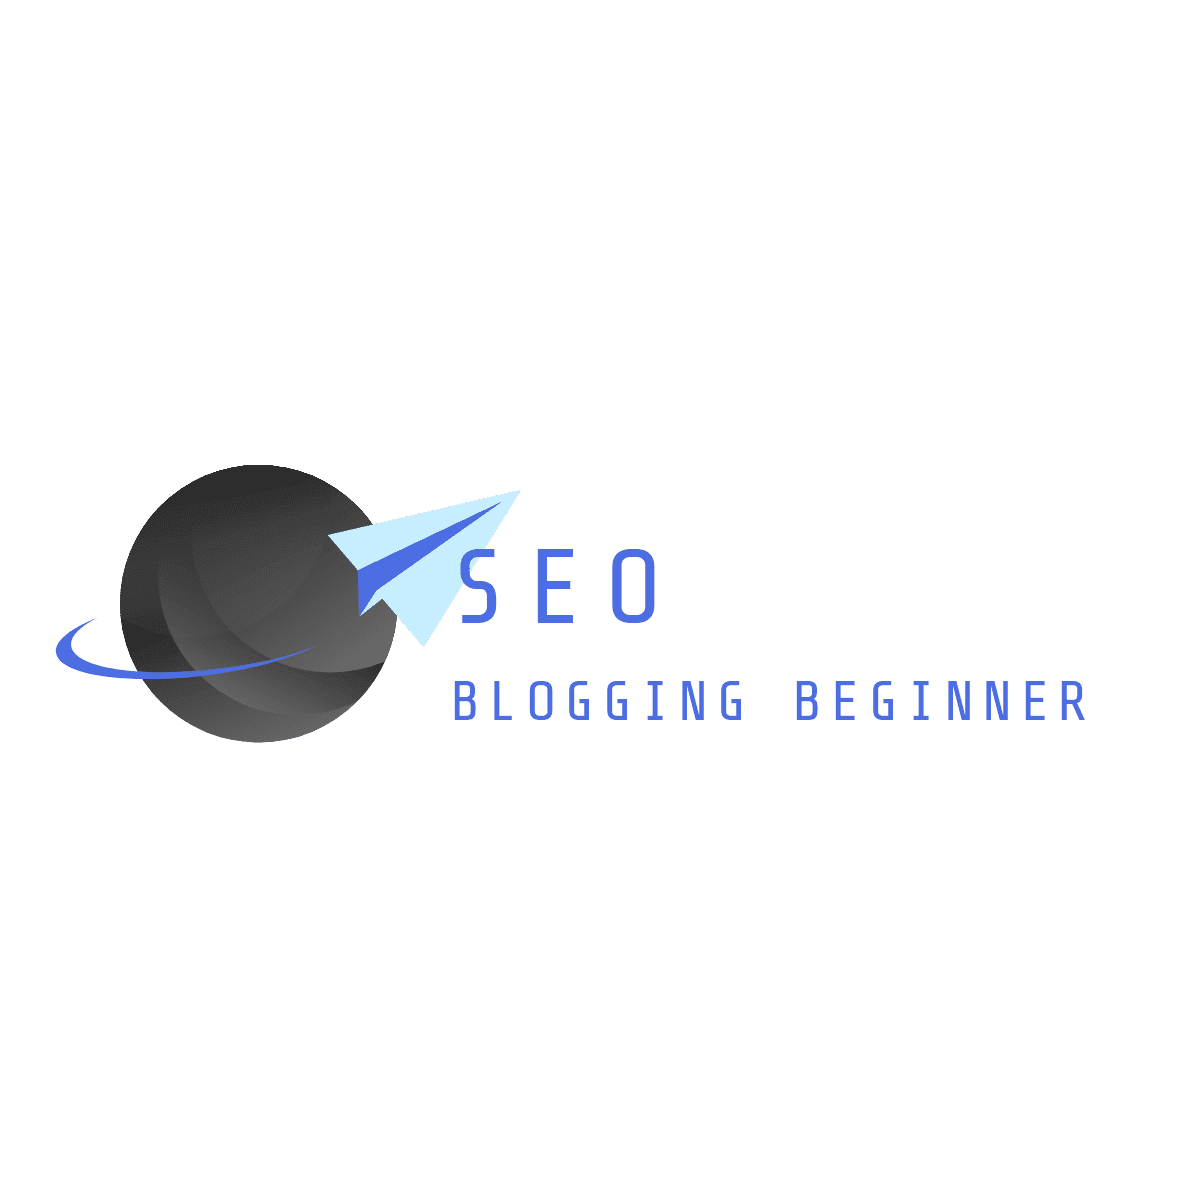 SEO BLOGGING BEGINNER